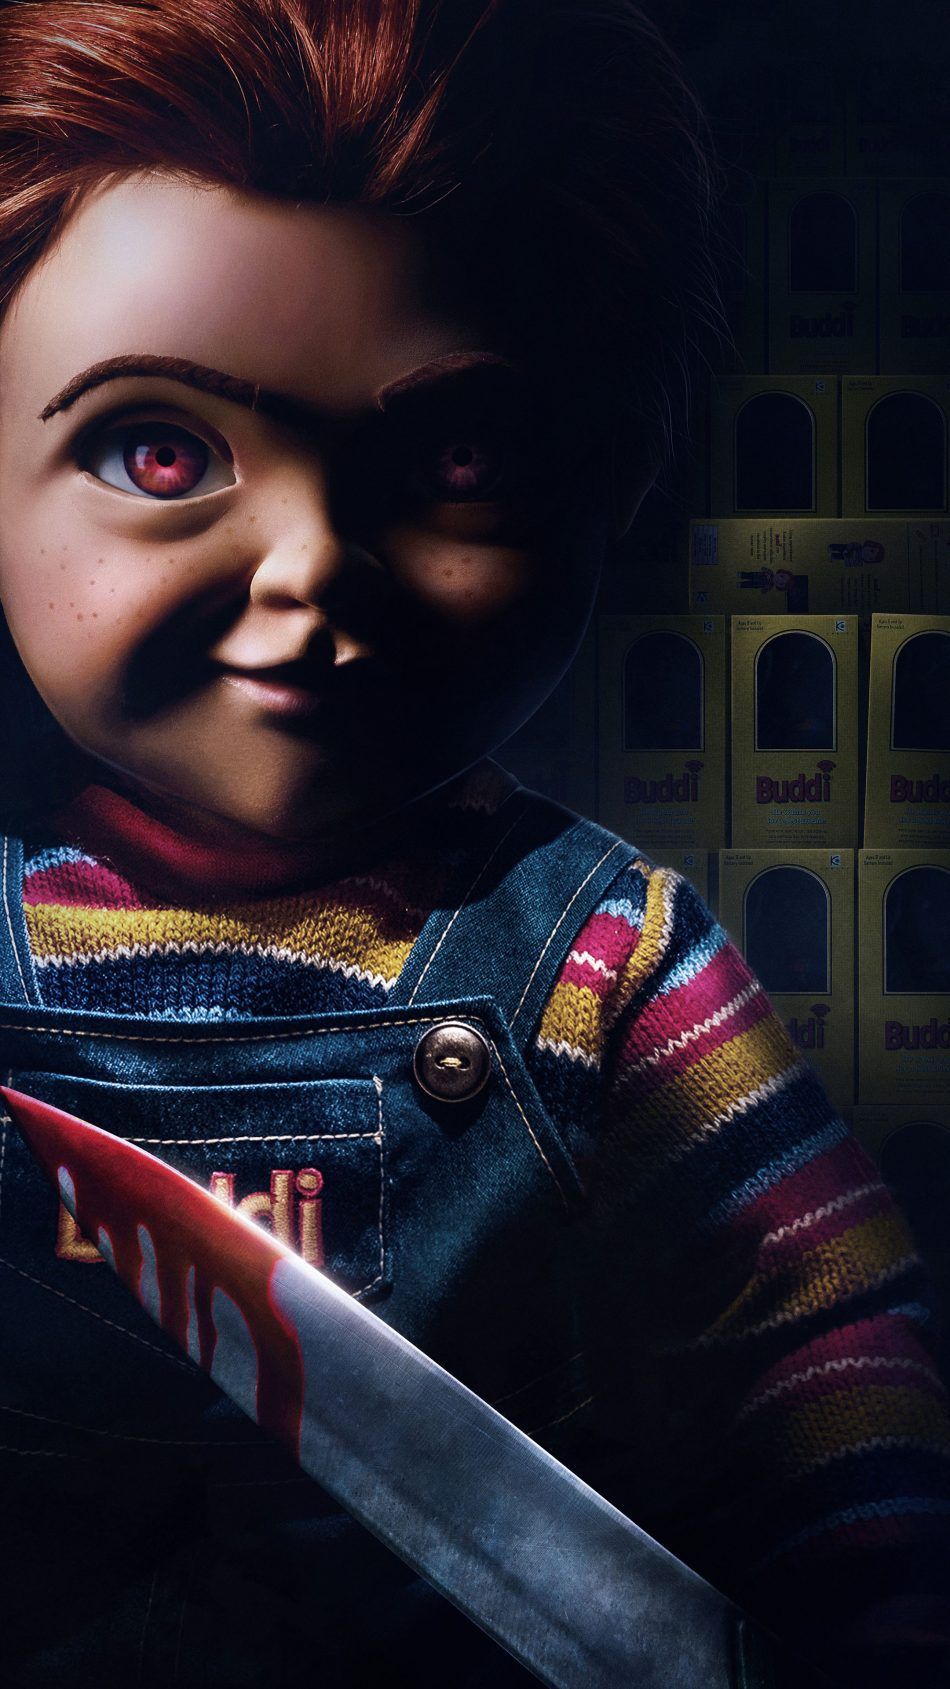 Child S Play 2019 4k Ultra Hd Mobile Wallpaper Child S Play Movie Kids Playing Childs Play Chucky